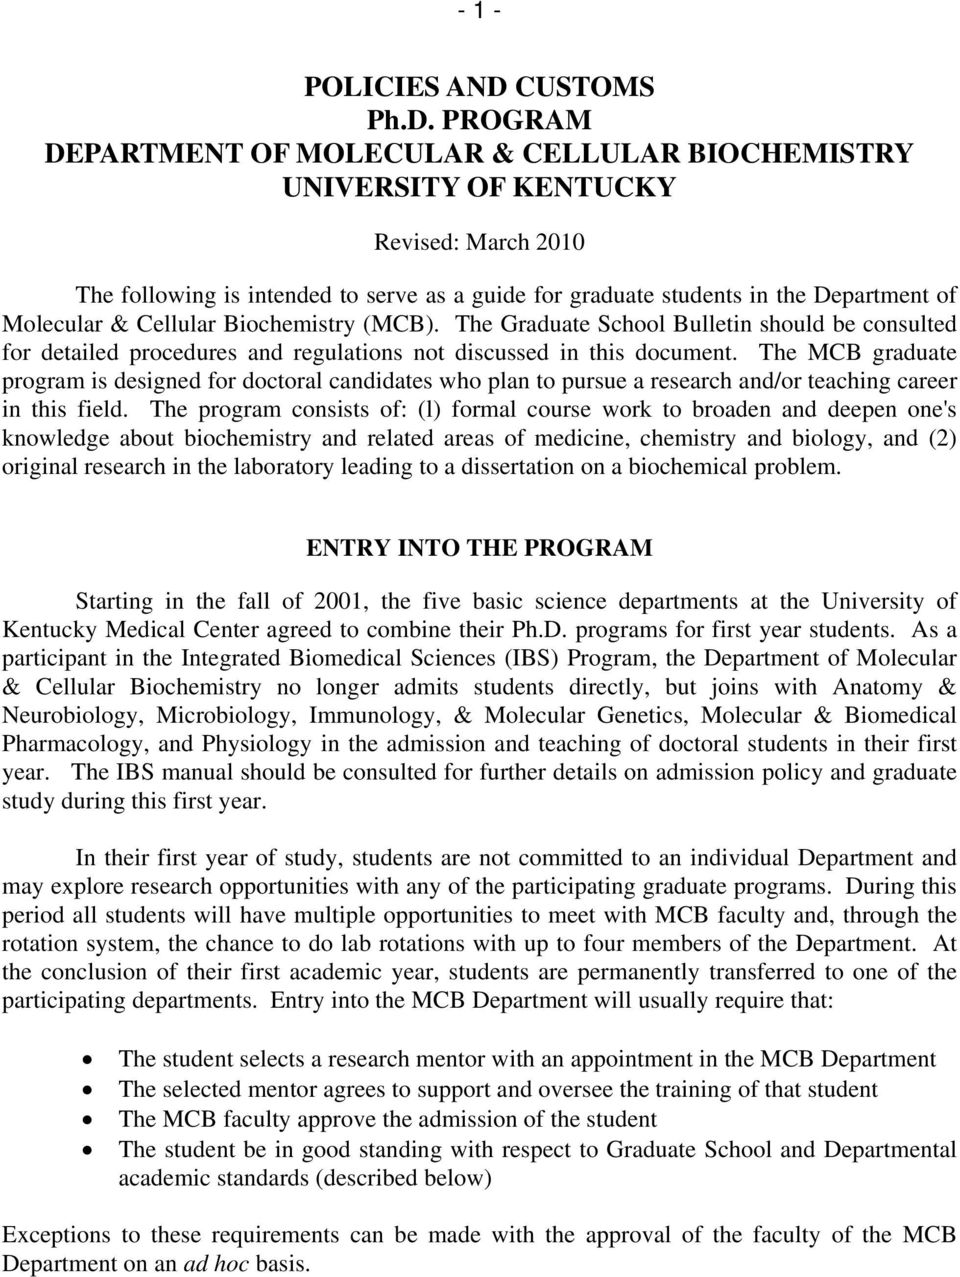 PROGRAM DEPARTMENT OF MOLECULAR & CELLULAR BIOCHEMISTRY UNIVERSITY OF KENTUCKY Revised: March 2010 The following is intended to serve as a guide for graduate students in the Department of Molecular &